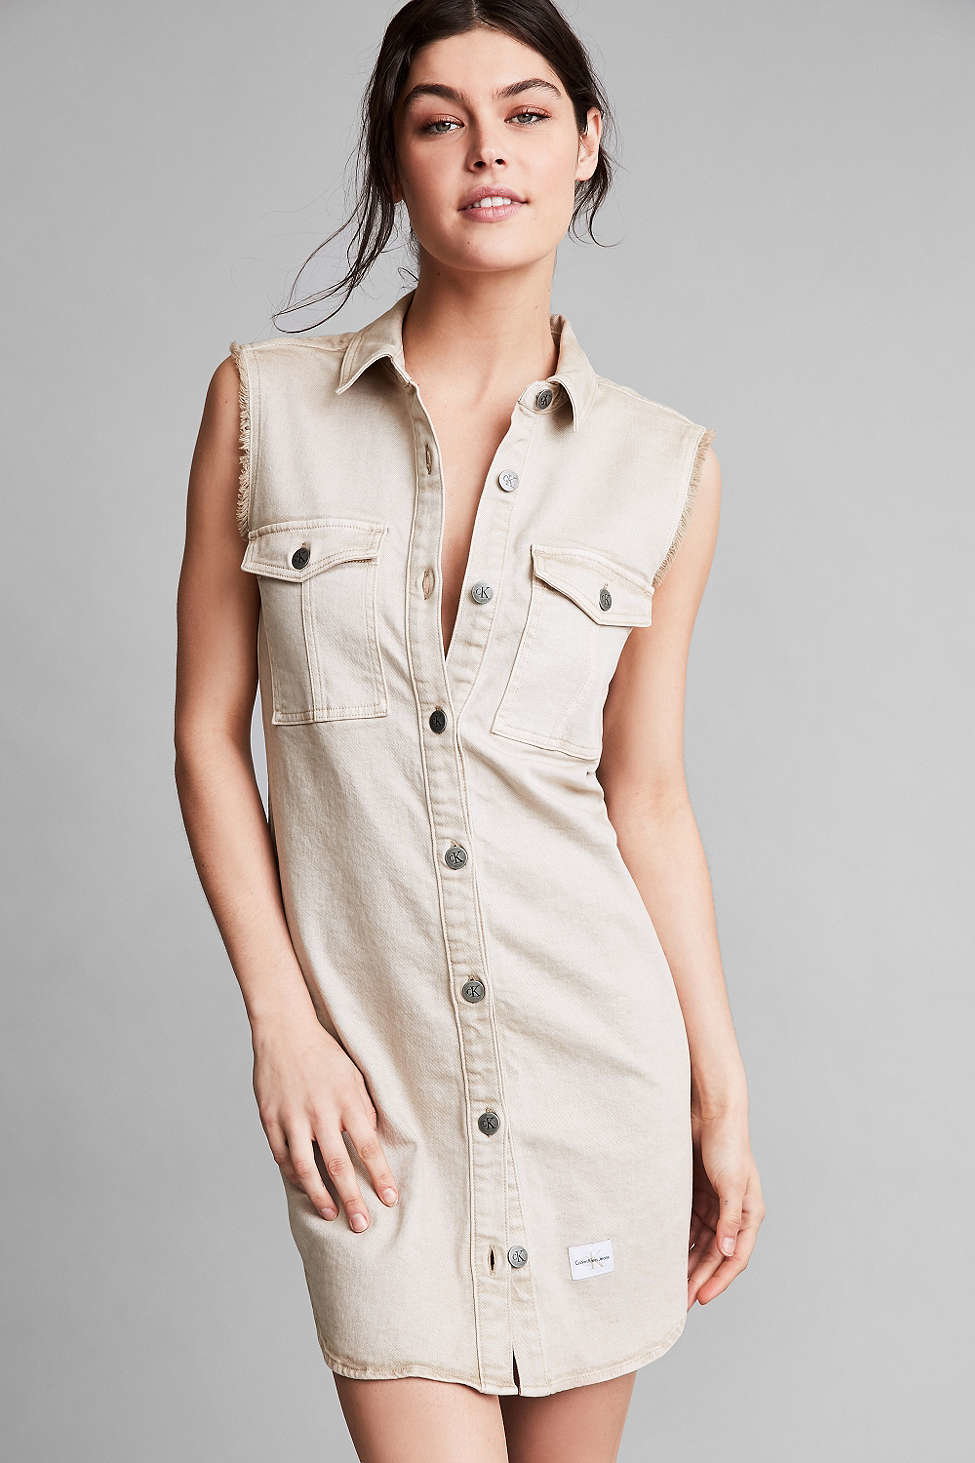 Calvin klein For Uo Khaki Sleeveless Shirt Dress in Black ...